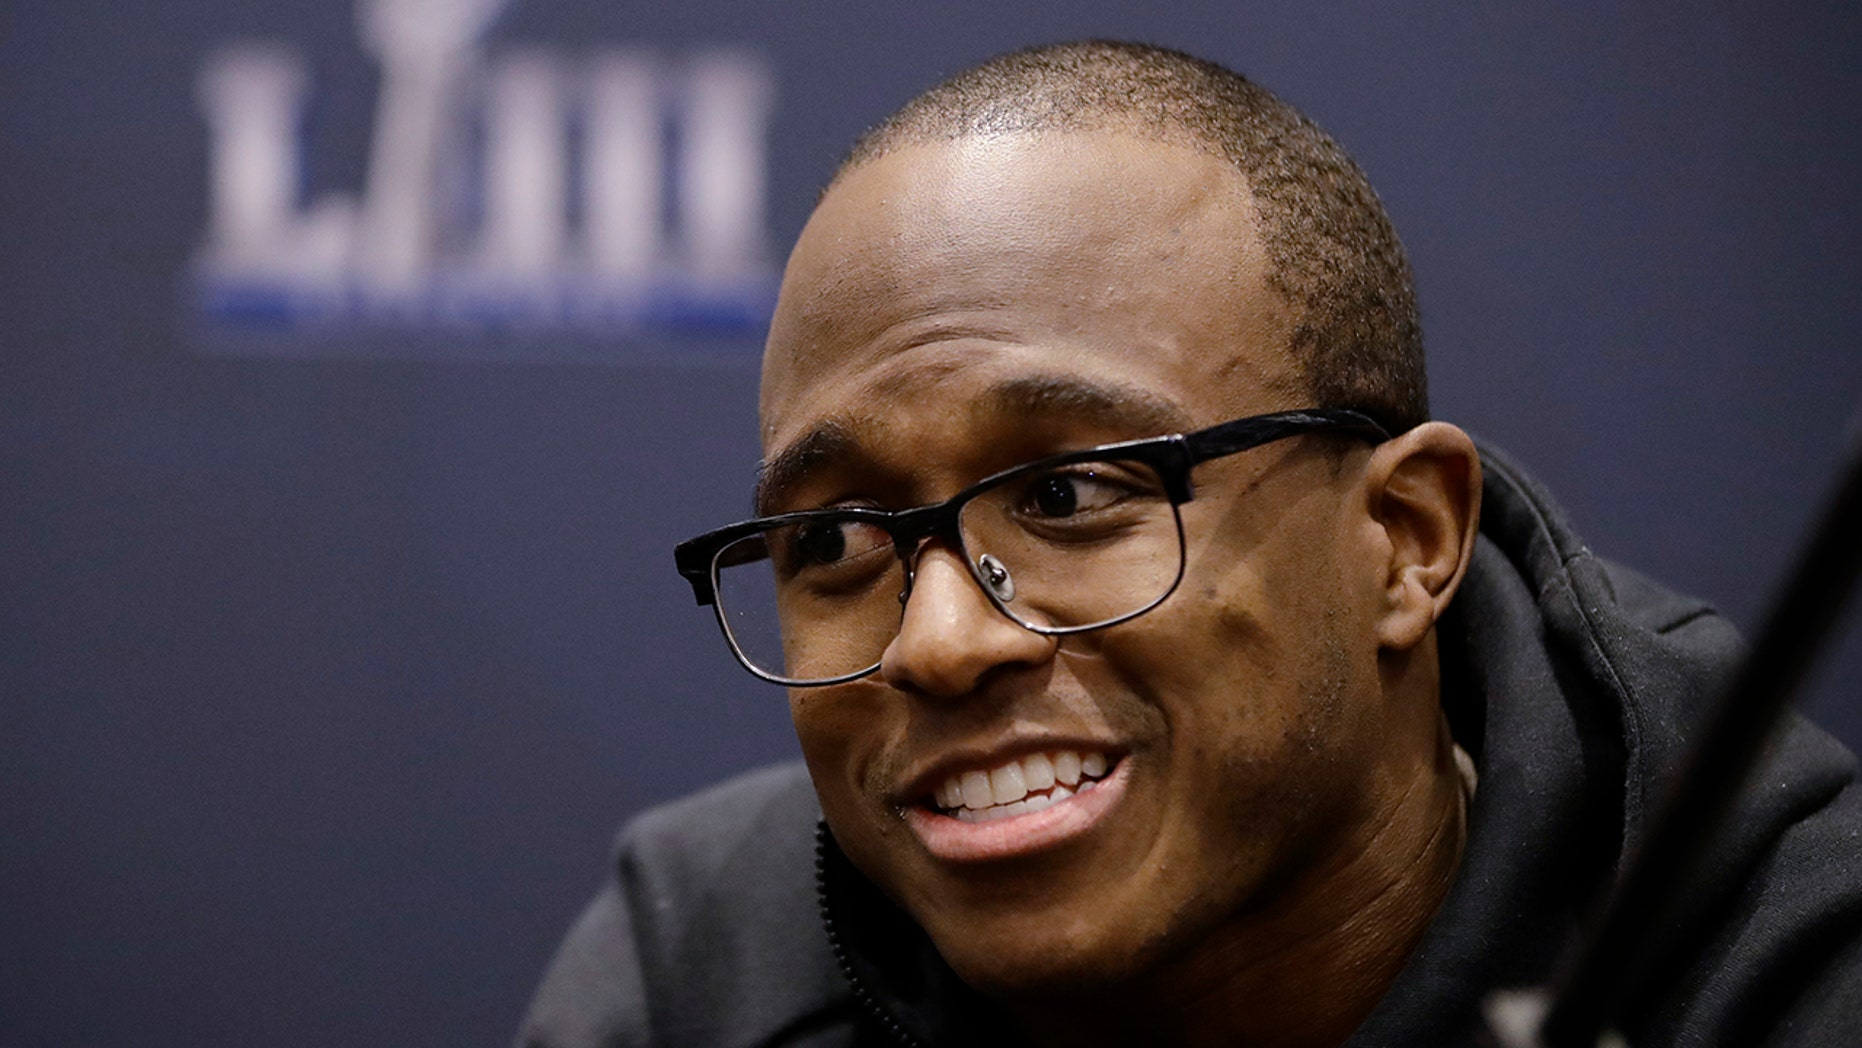 New England Patriots' Matthew Slater speaks with members of the media during a news conference Tuesday, Jan. 29, 2019, ahead of the NFL Super Bowl LIII game against the Los Angeles Rams in Atlanta.